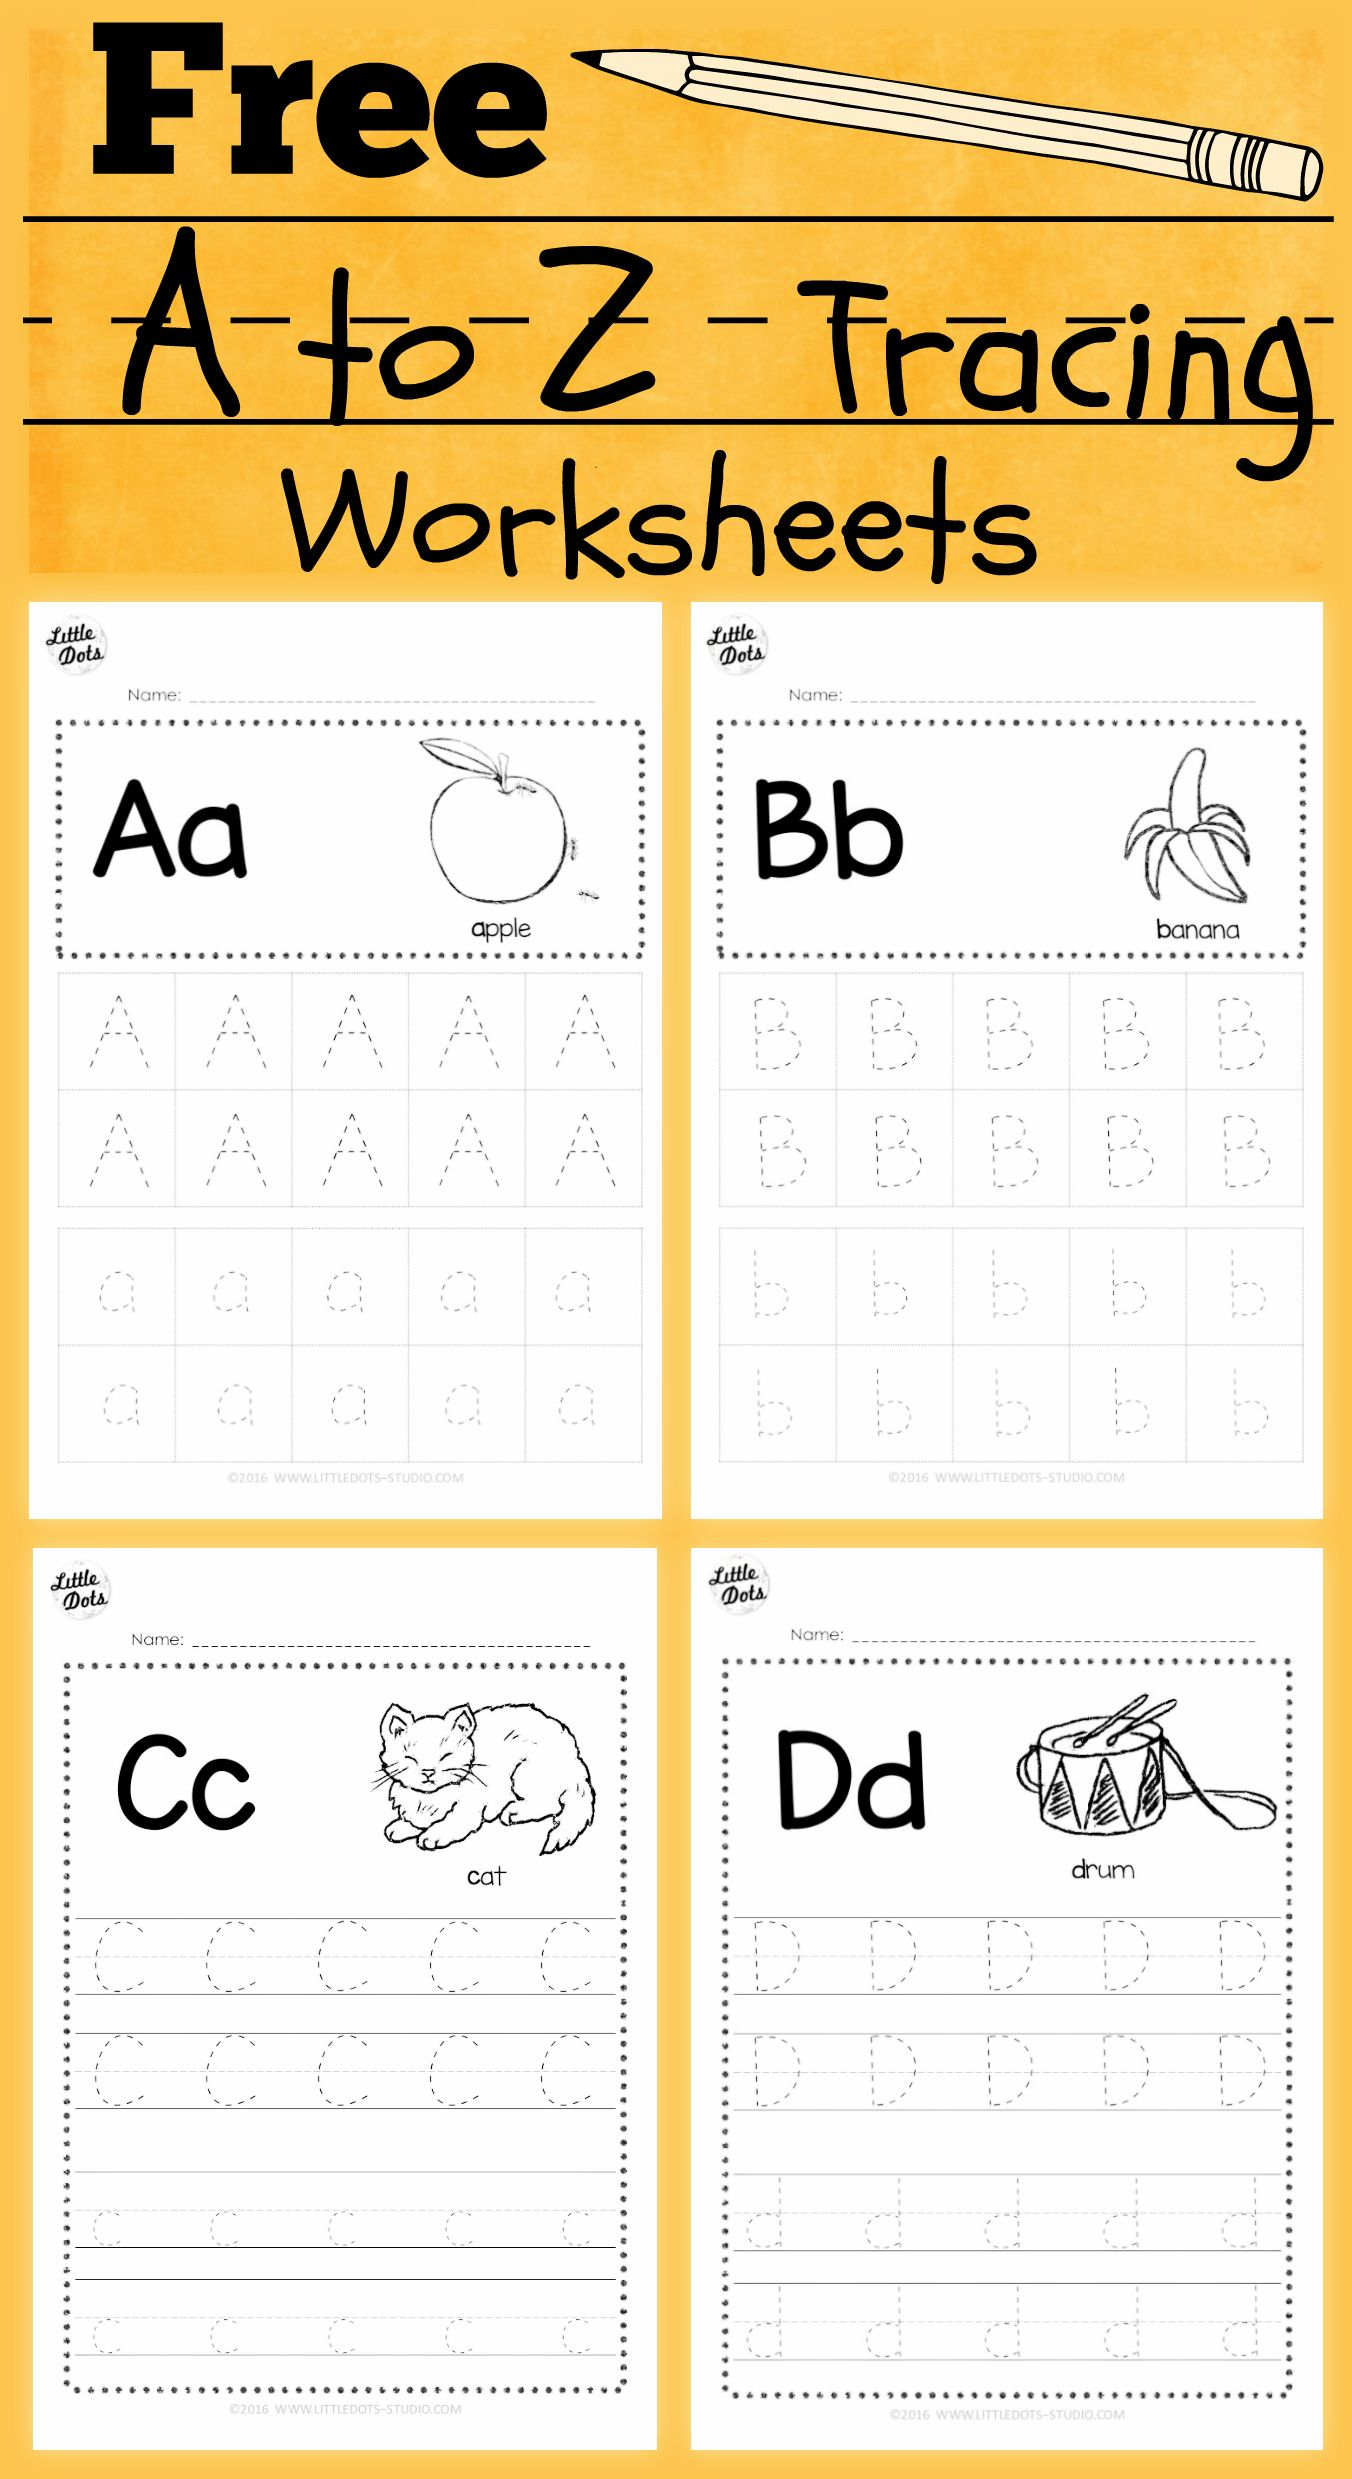 Download Free Alphabet Tracing Worksheets For Letter A To Z regarding A-Z Alphabet Tracing Worksheets